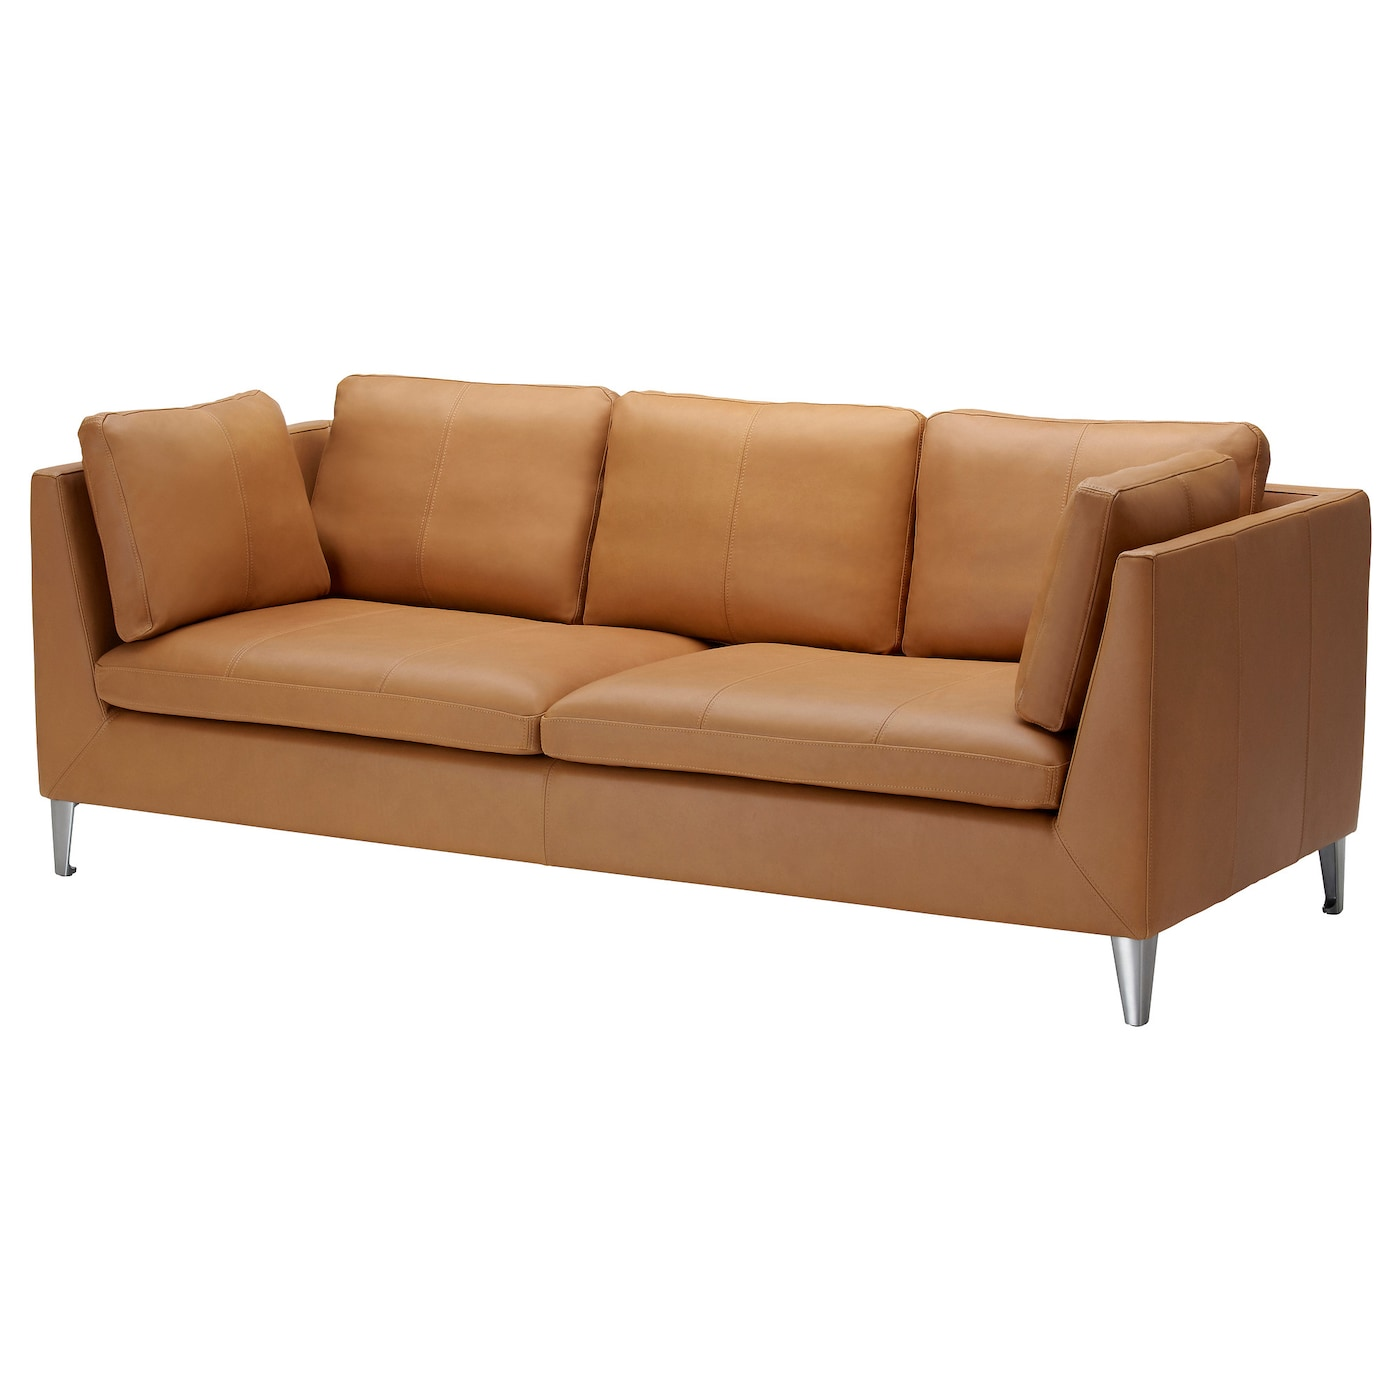 IKEA STOCKHOLM three-seat sofa 25 year guarantee. Read about the terms in the guarantee brochure.